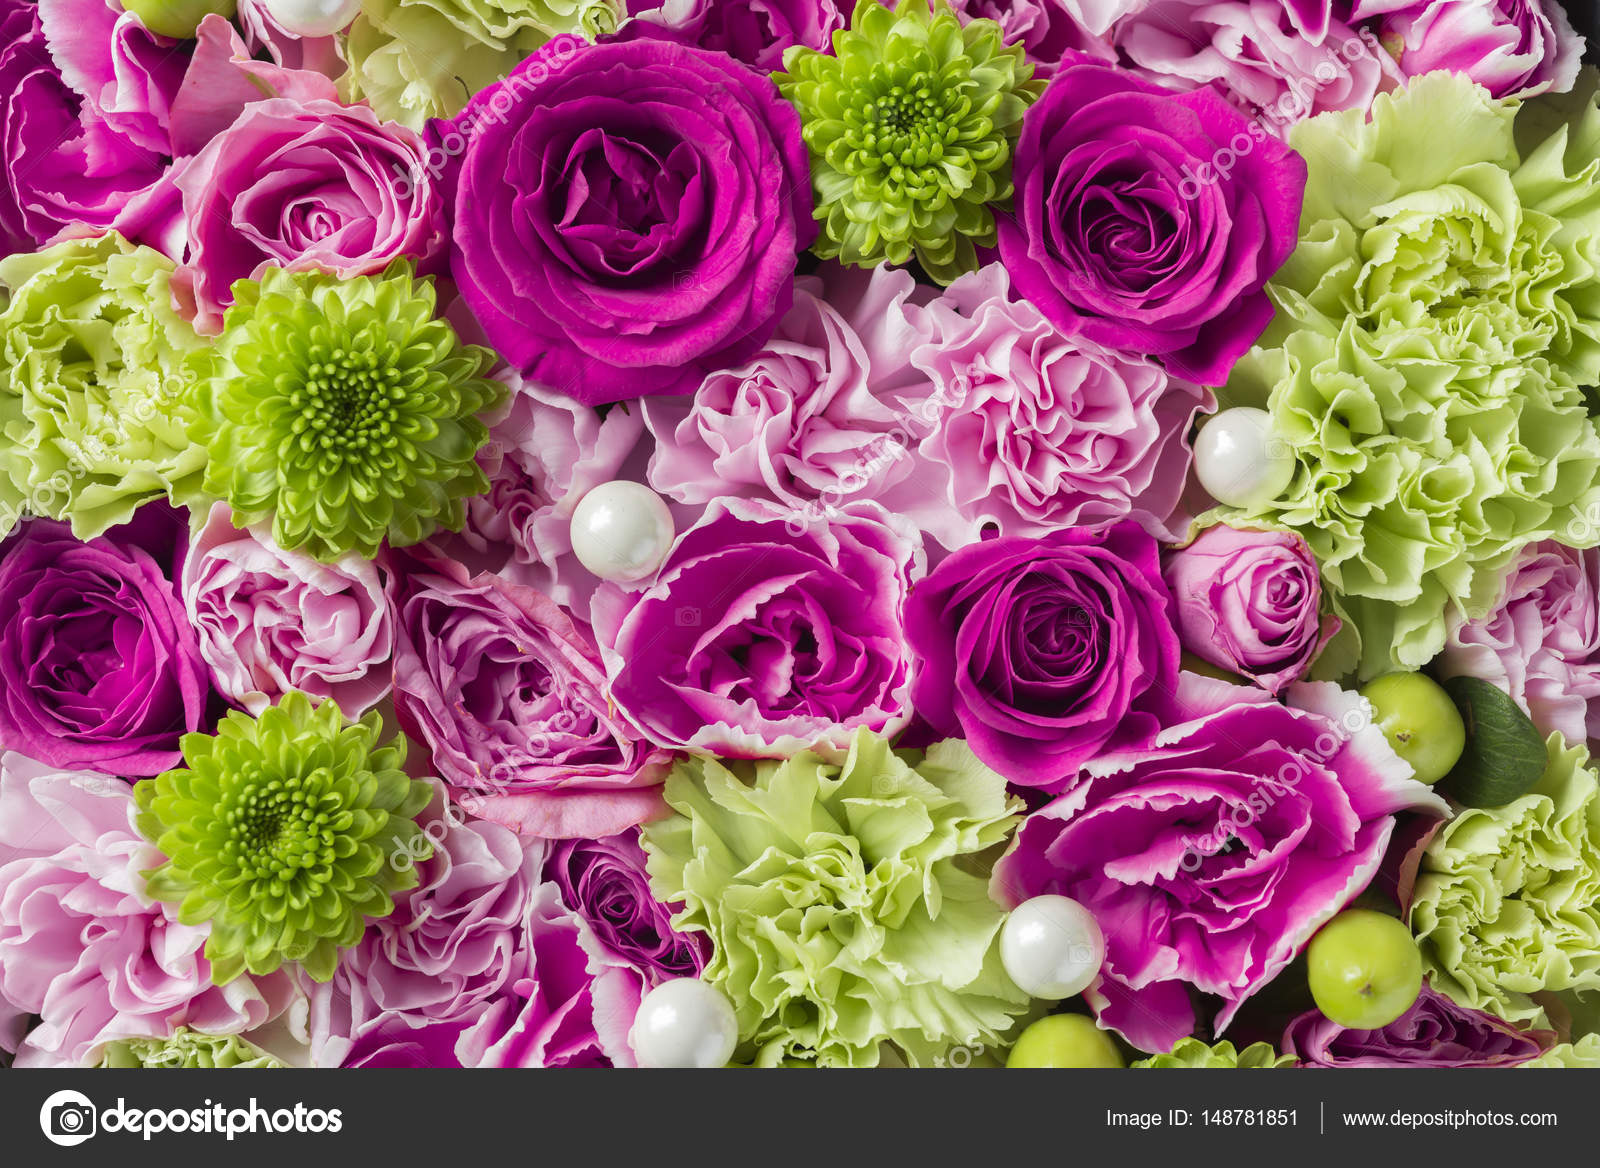 A wall made of beautiful rose flowers stock photo keiphoto a wall made of beautiful rose flowers photo by keiphoto izmirmasajfo